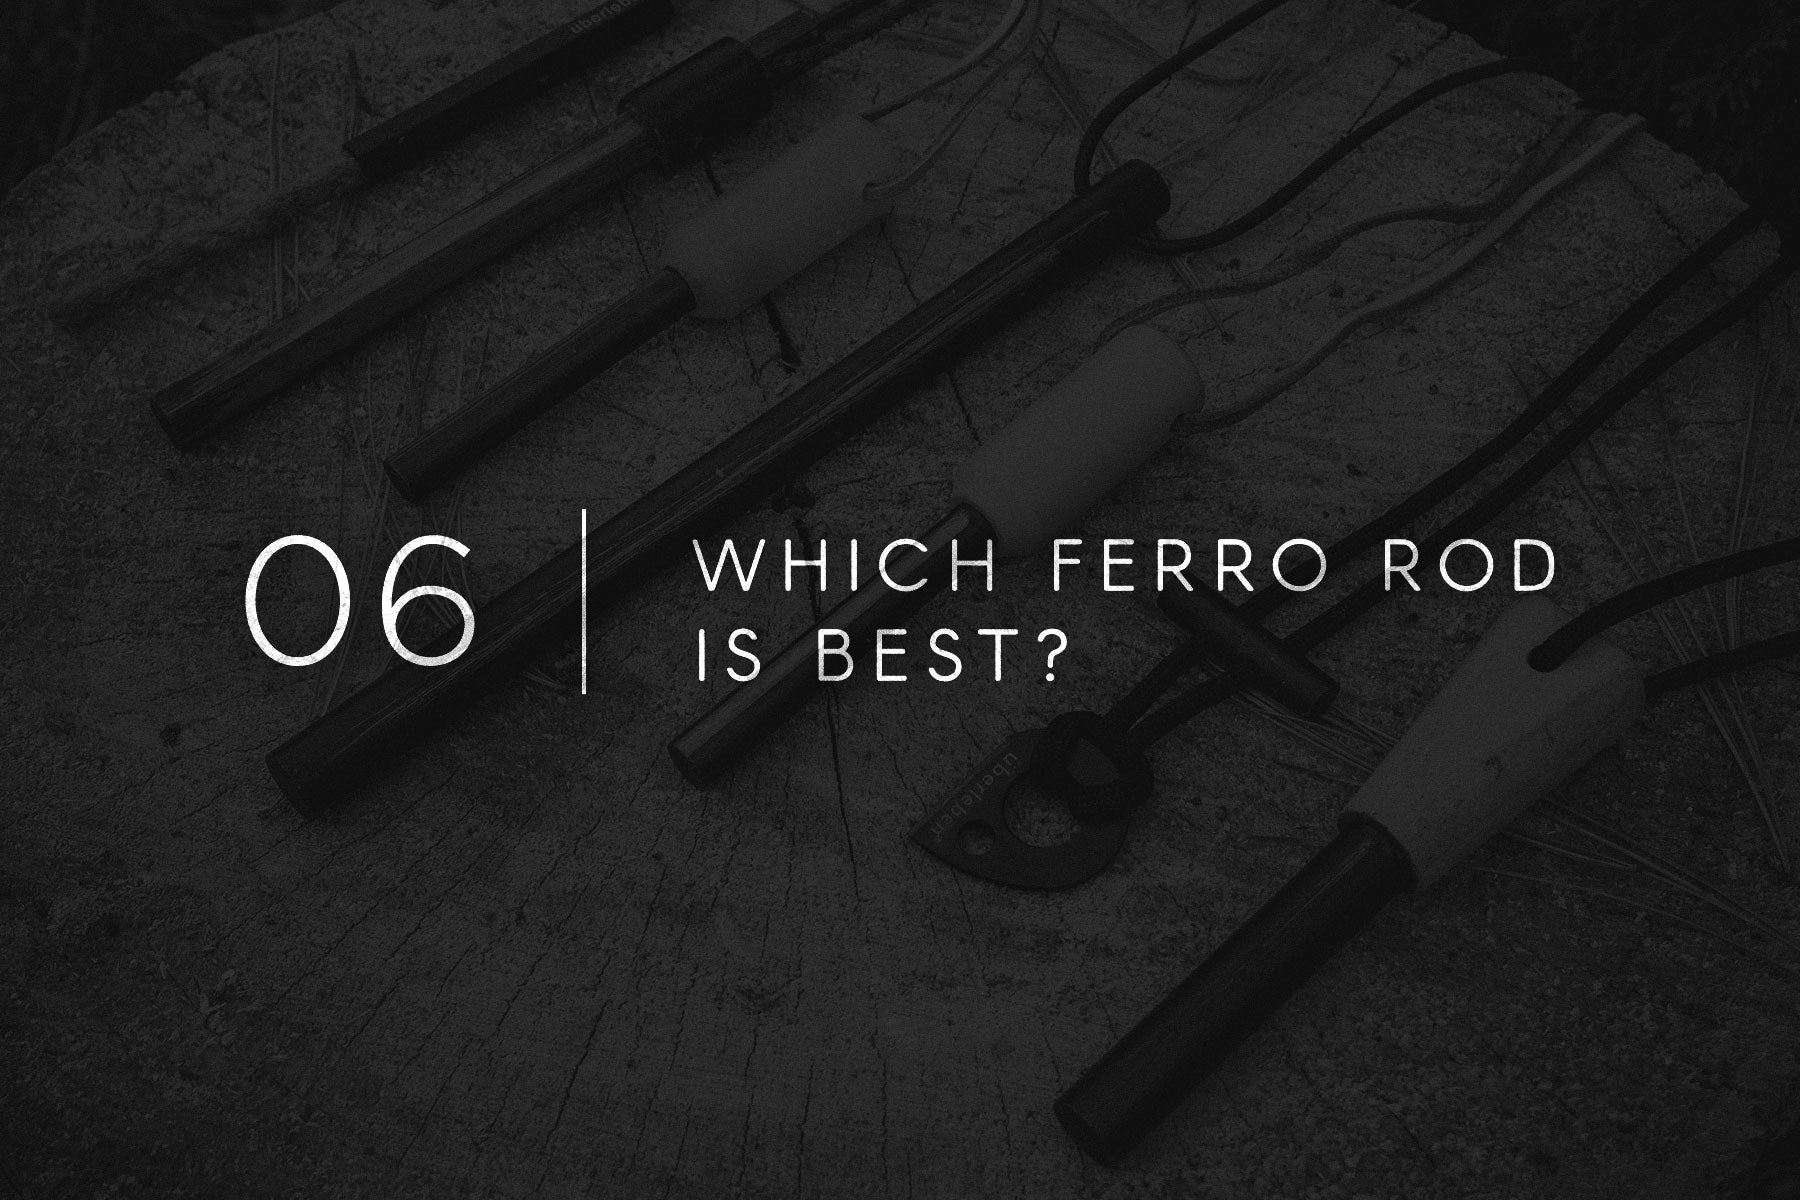 Field Notes 06 - Which Ferro Rod Is Best?